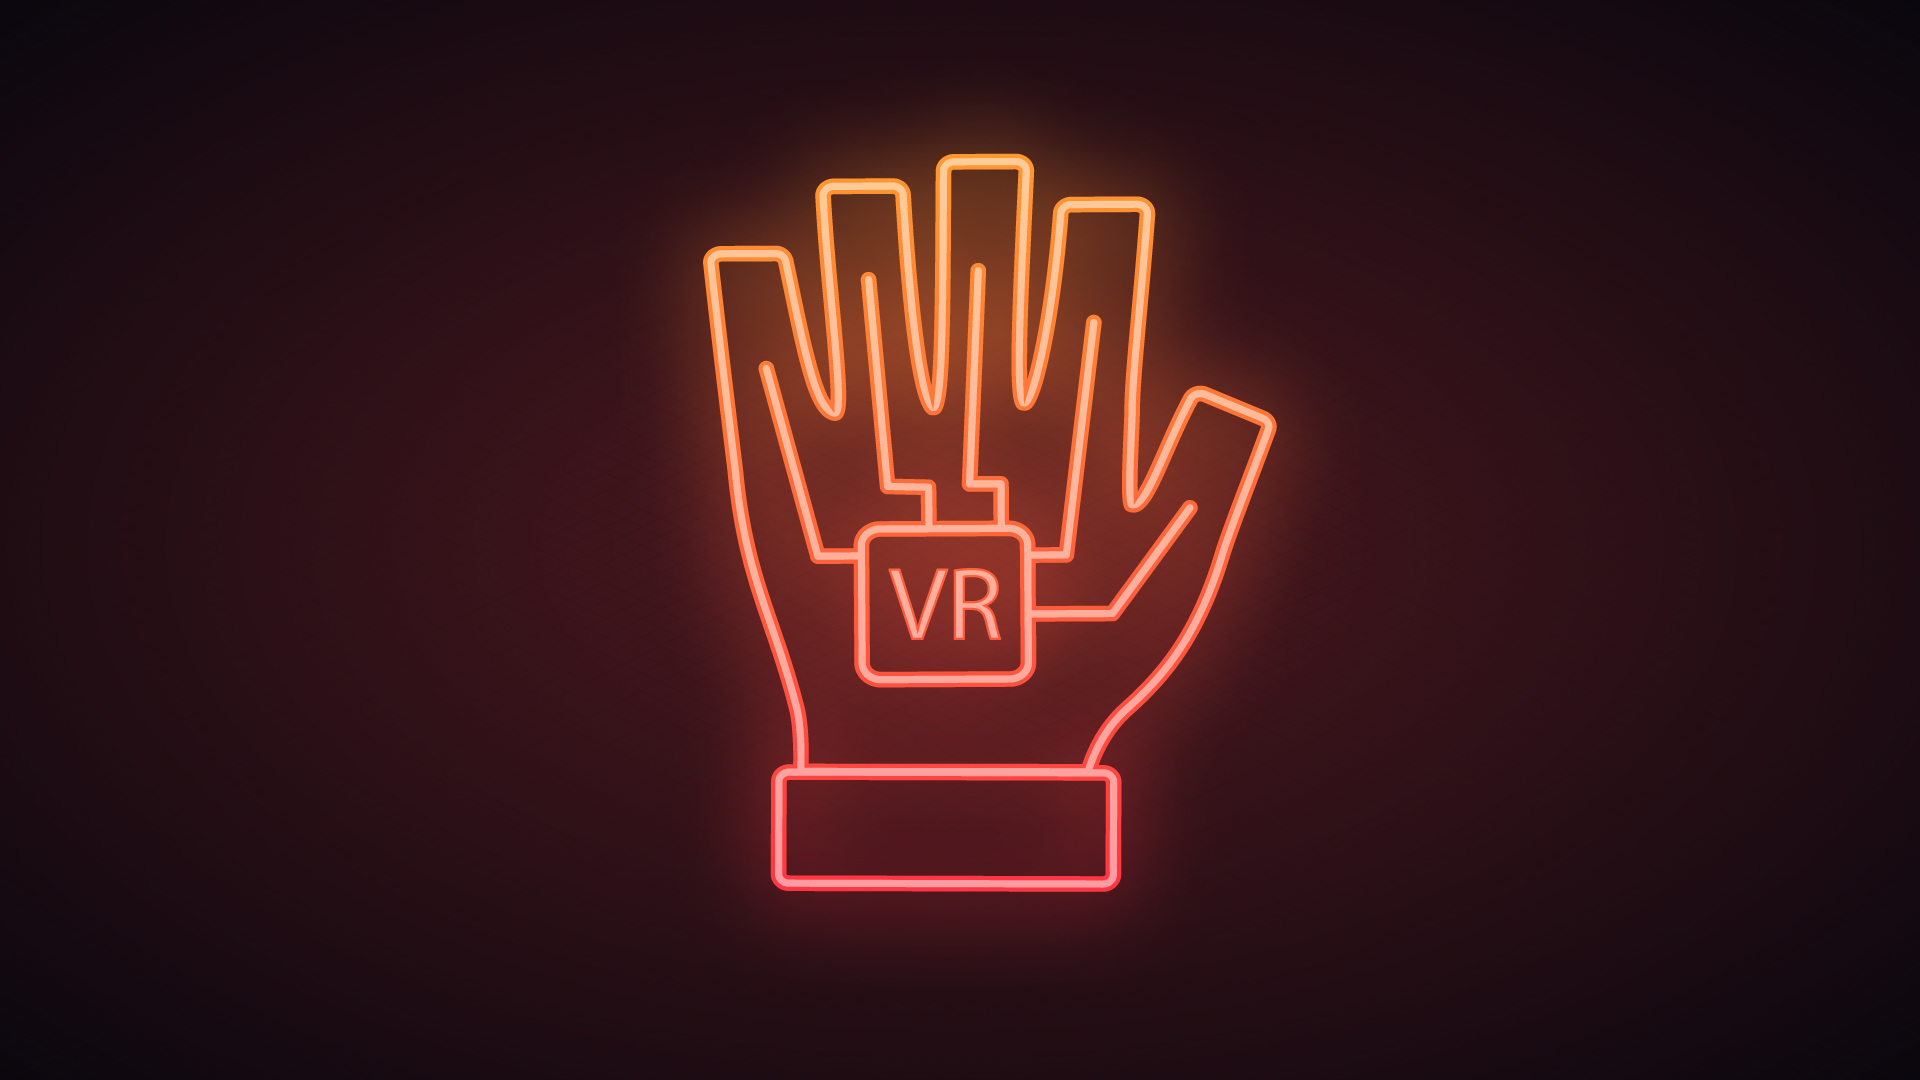 Glowing Haptic Glove With VR Written On It